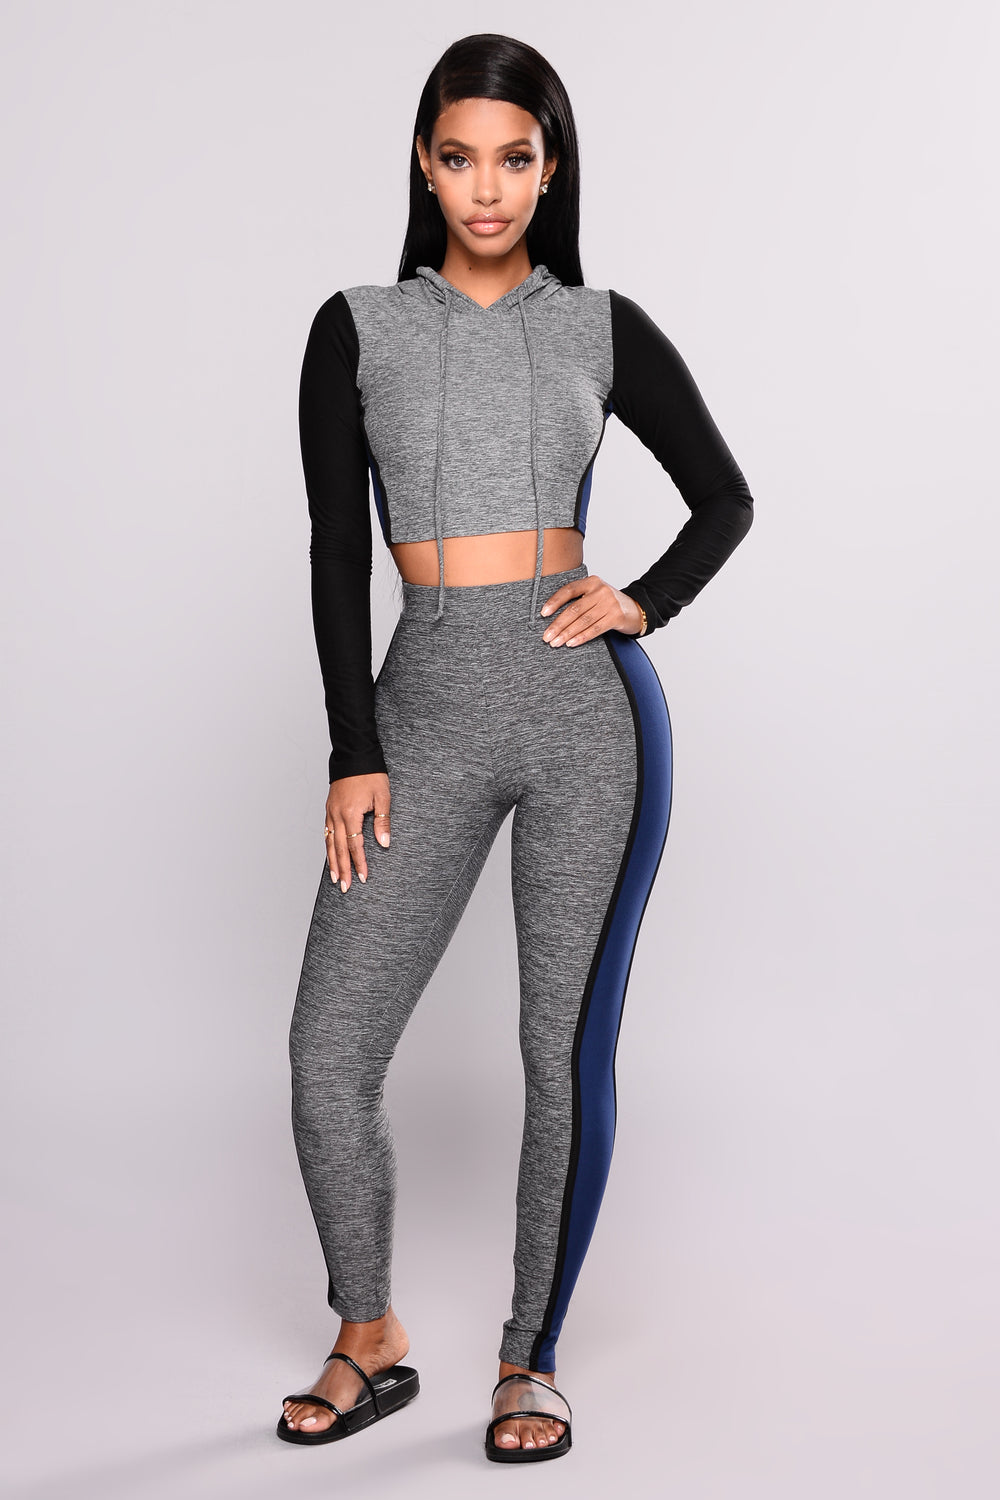 Black Me Out Set - Grey